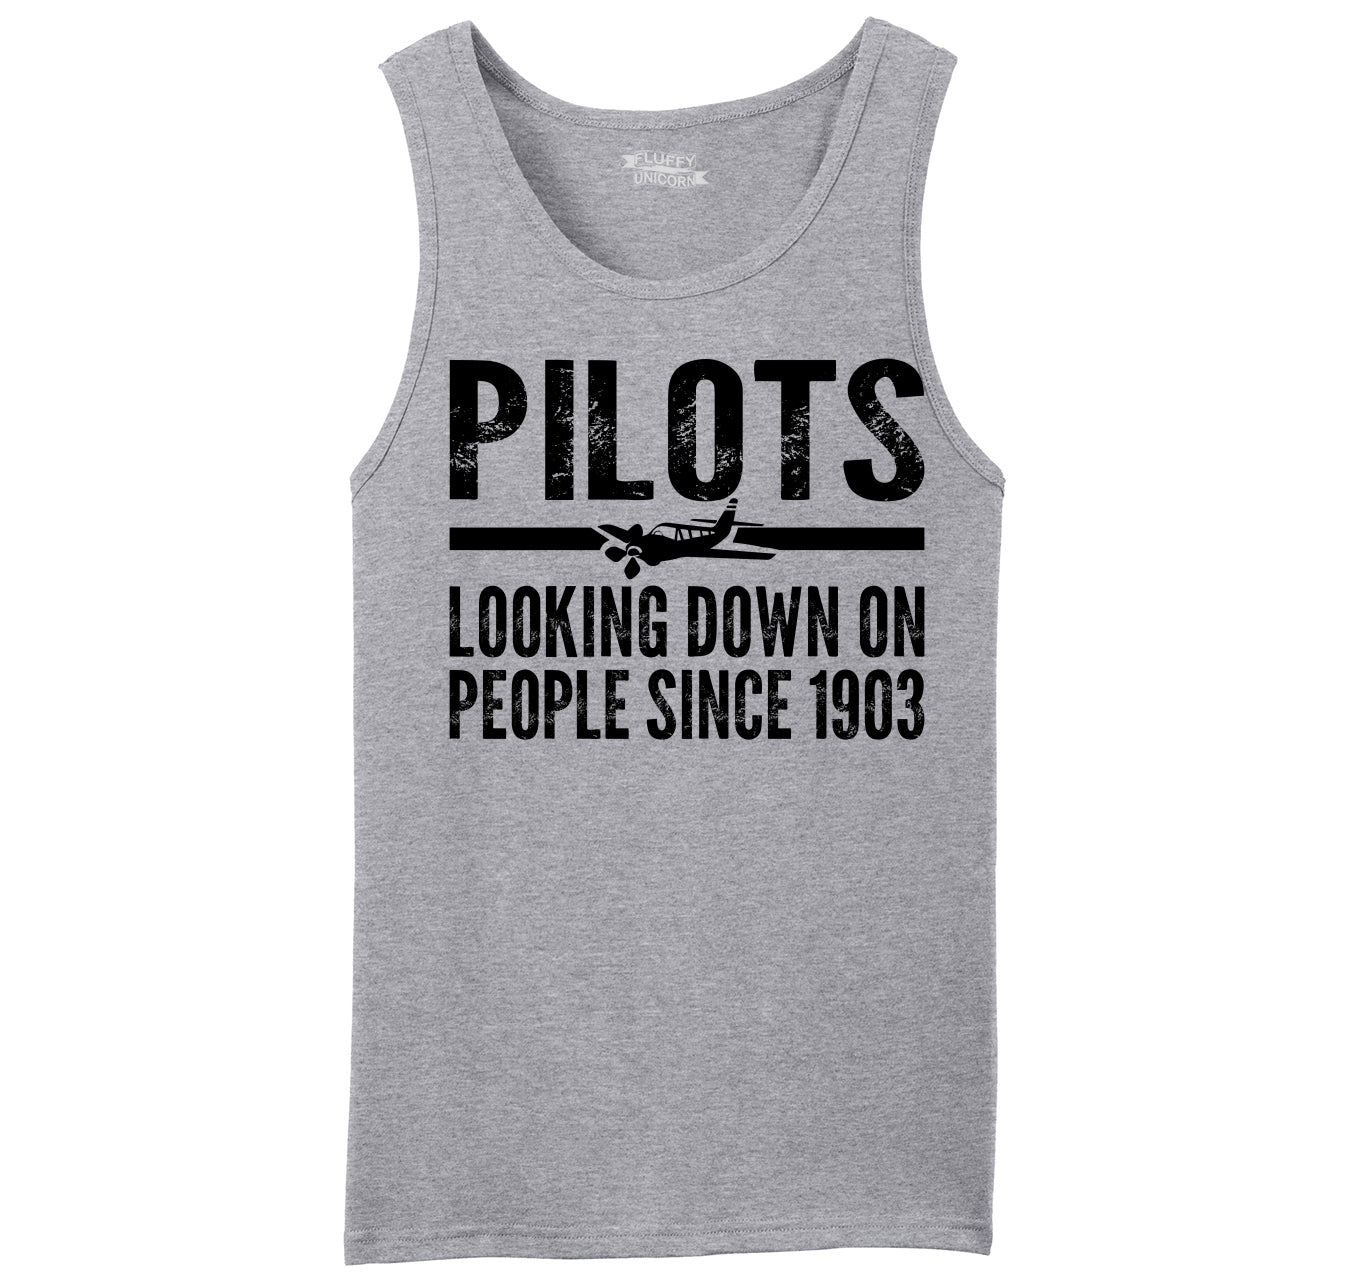 4f4538ab Pilots Looking Down On People Since 1903 Funny Aviation Shirt Mens  Sleeveless Tank Top